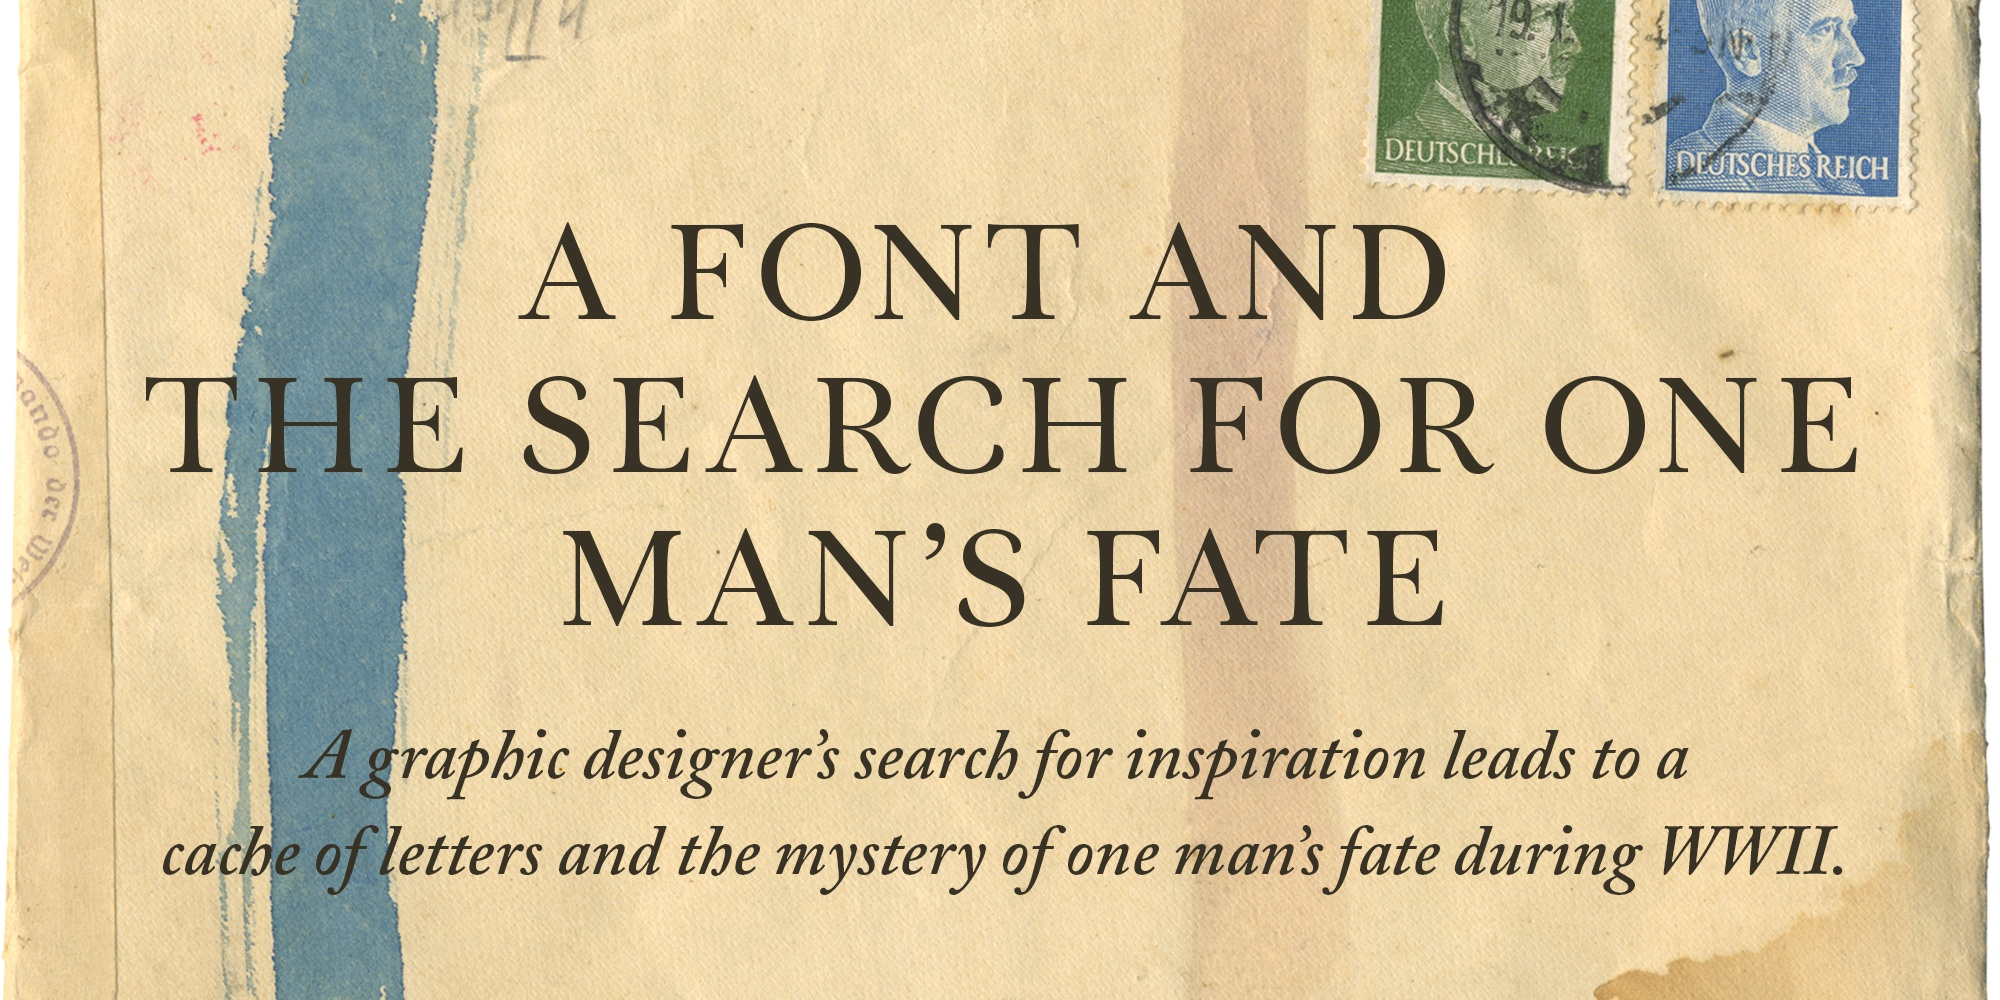 A Font and the Search for One Man's Fate